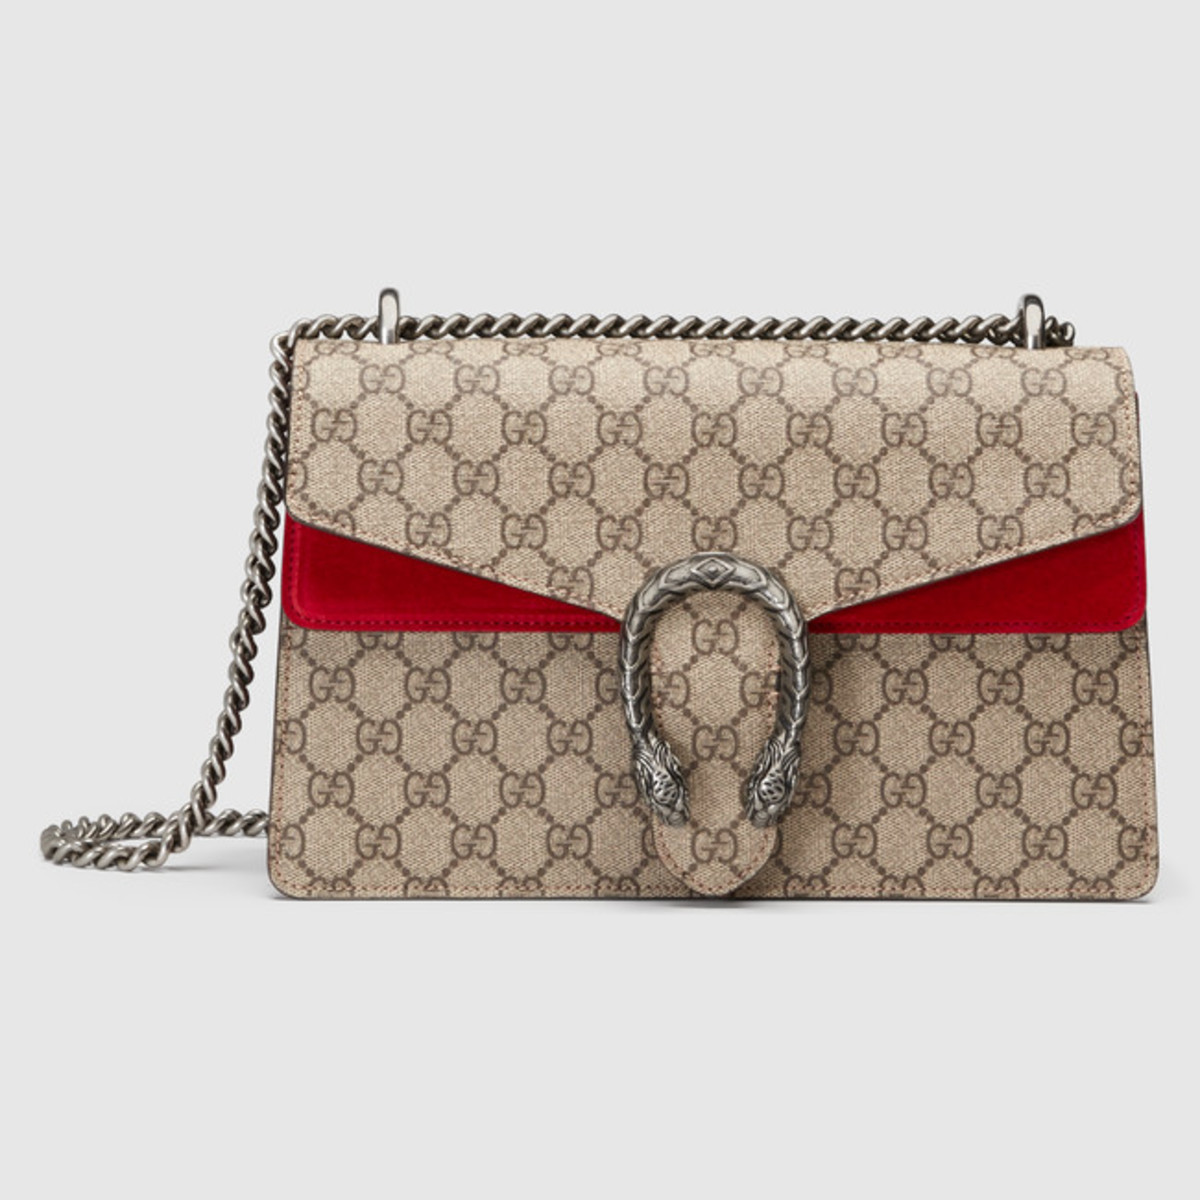 Hot Designer Handbags Of The Moment Newly Updated 2019 Hubpages